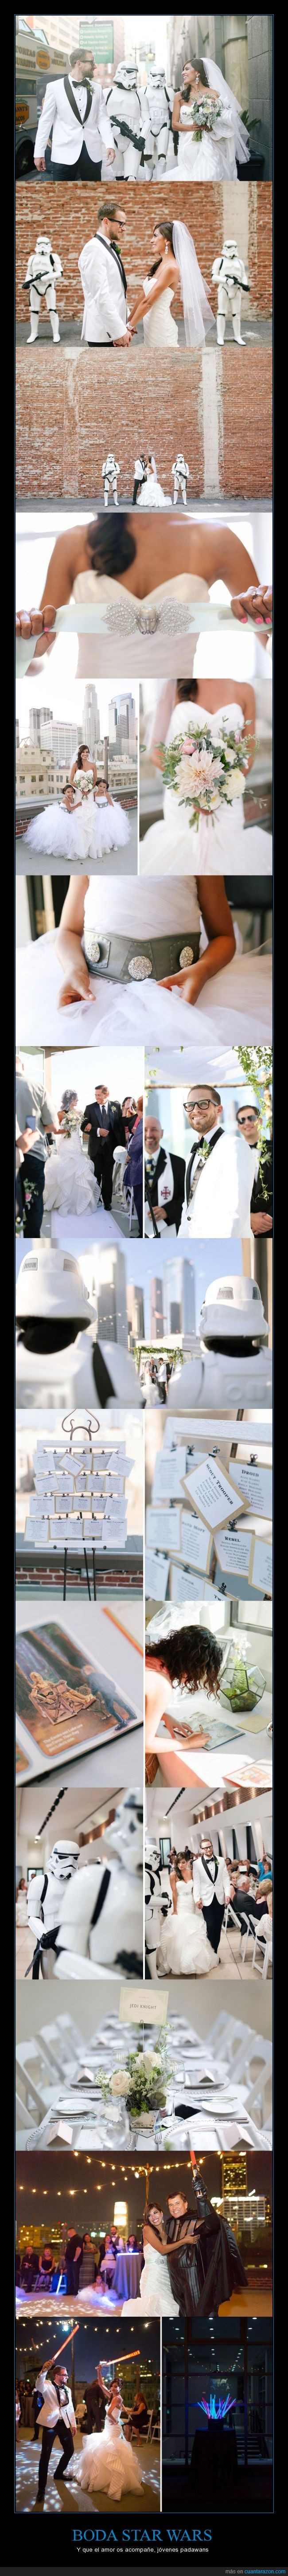 boda,Darth Vader,disfraz,enlace,lable laser,matrimonio,novia,novio,padre,Star Wars,storm trooper